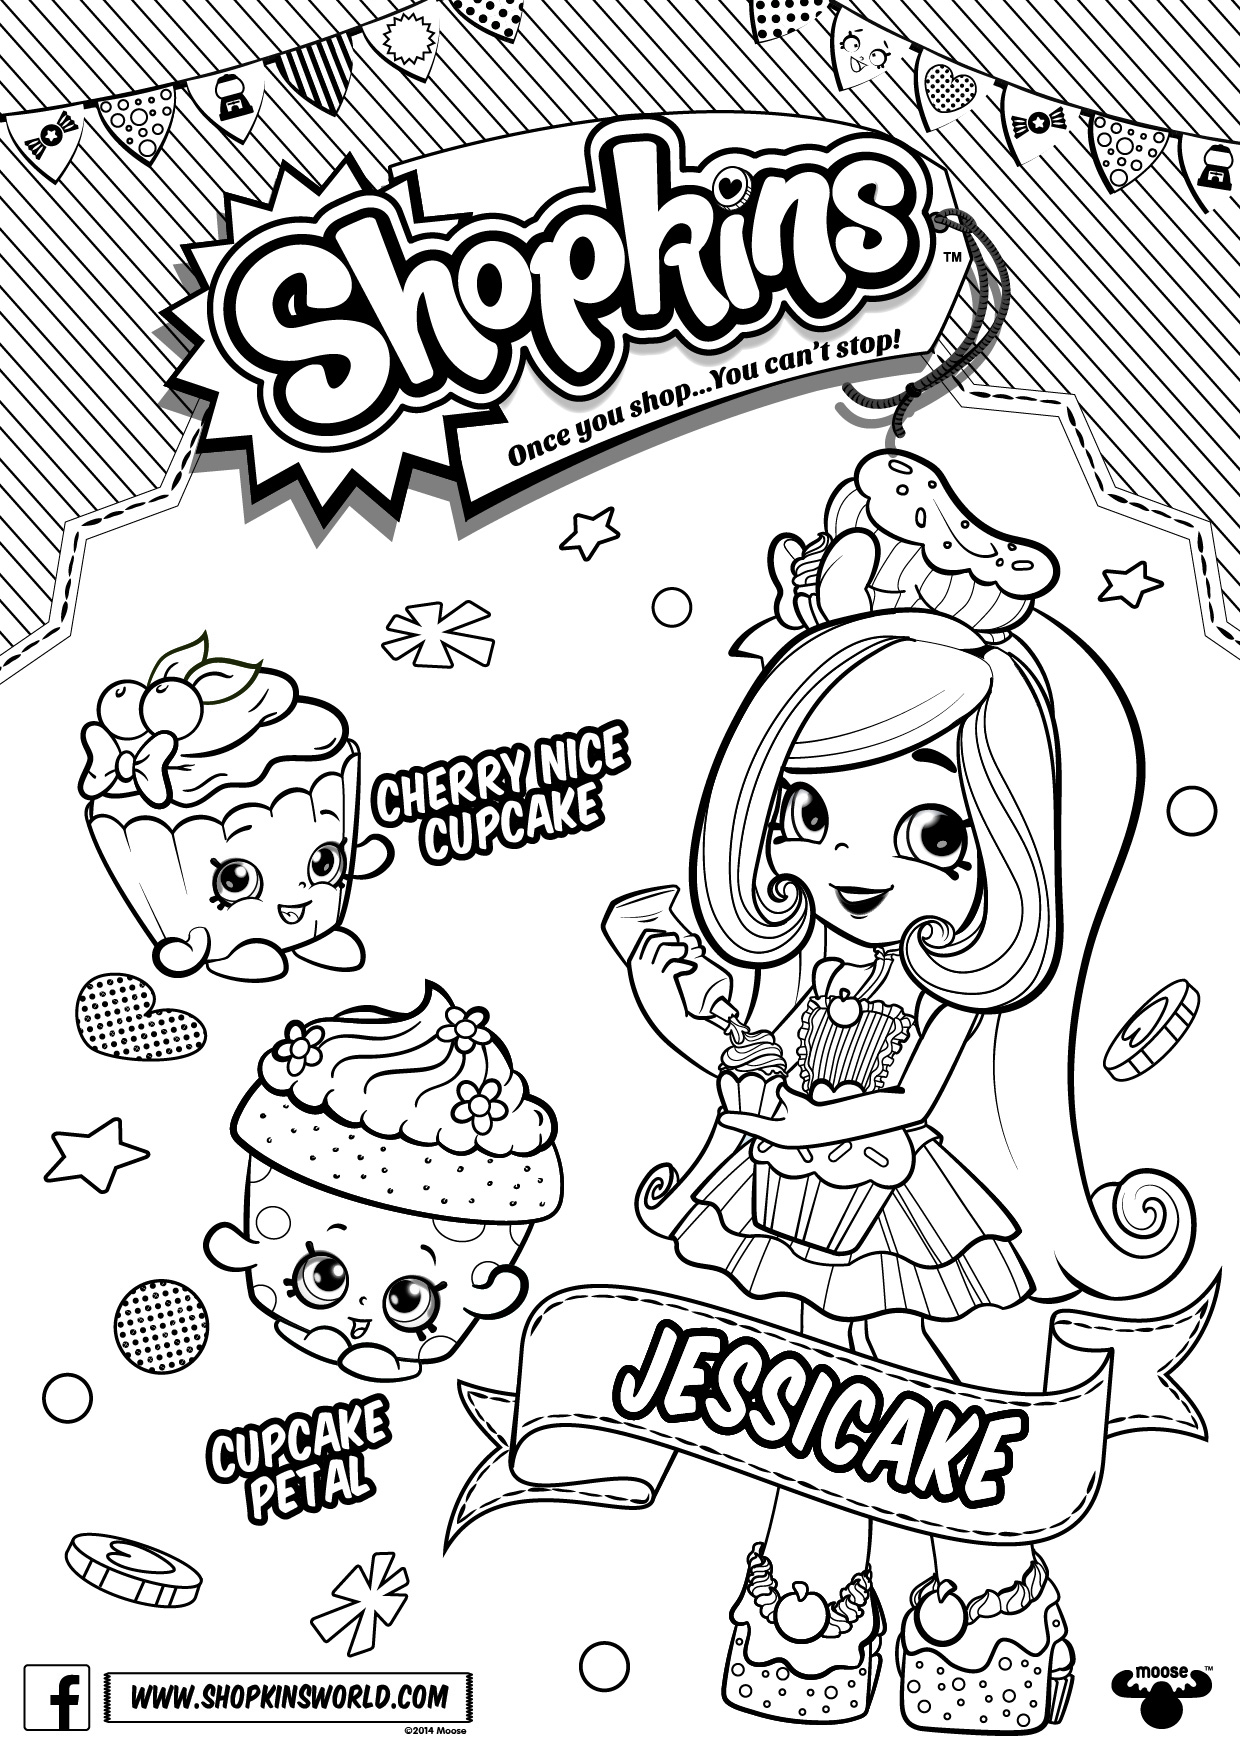 JessiCake Shoppies - Shopkins Coloring Pages